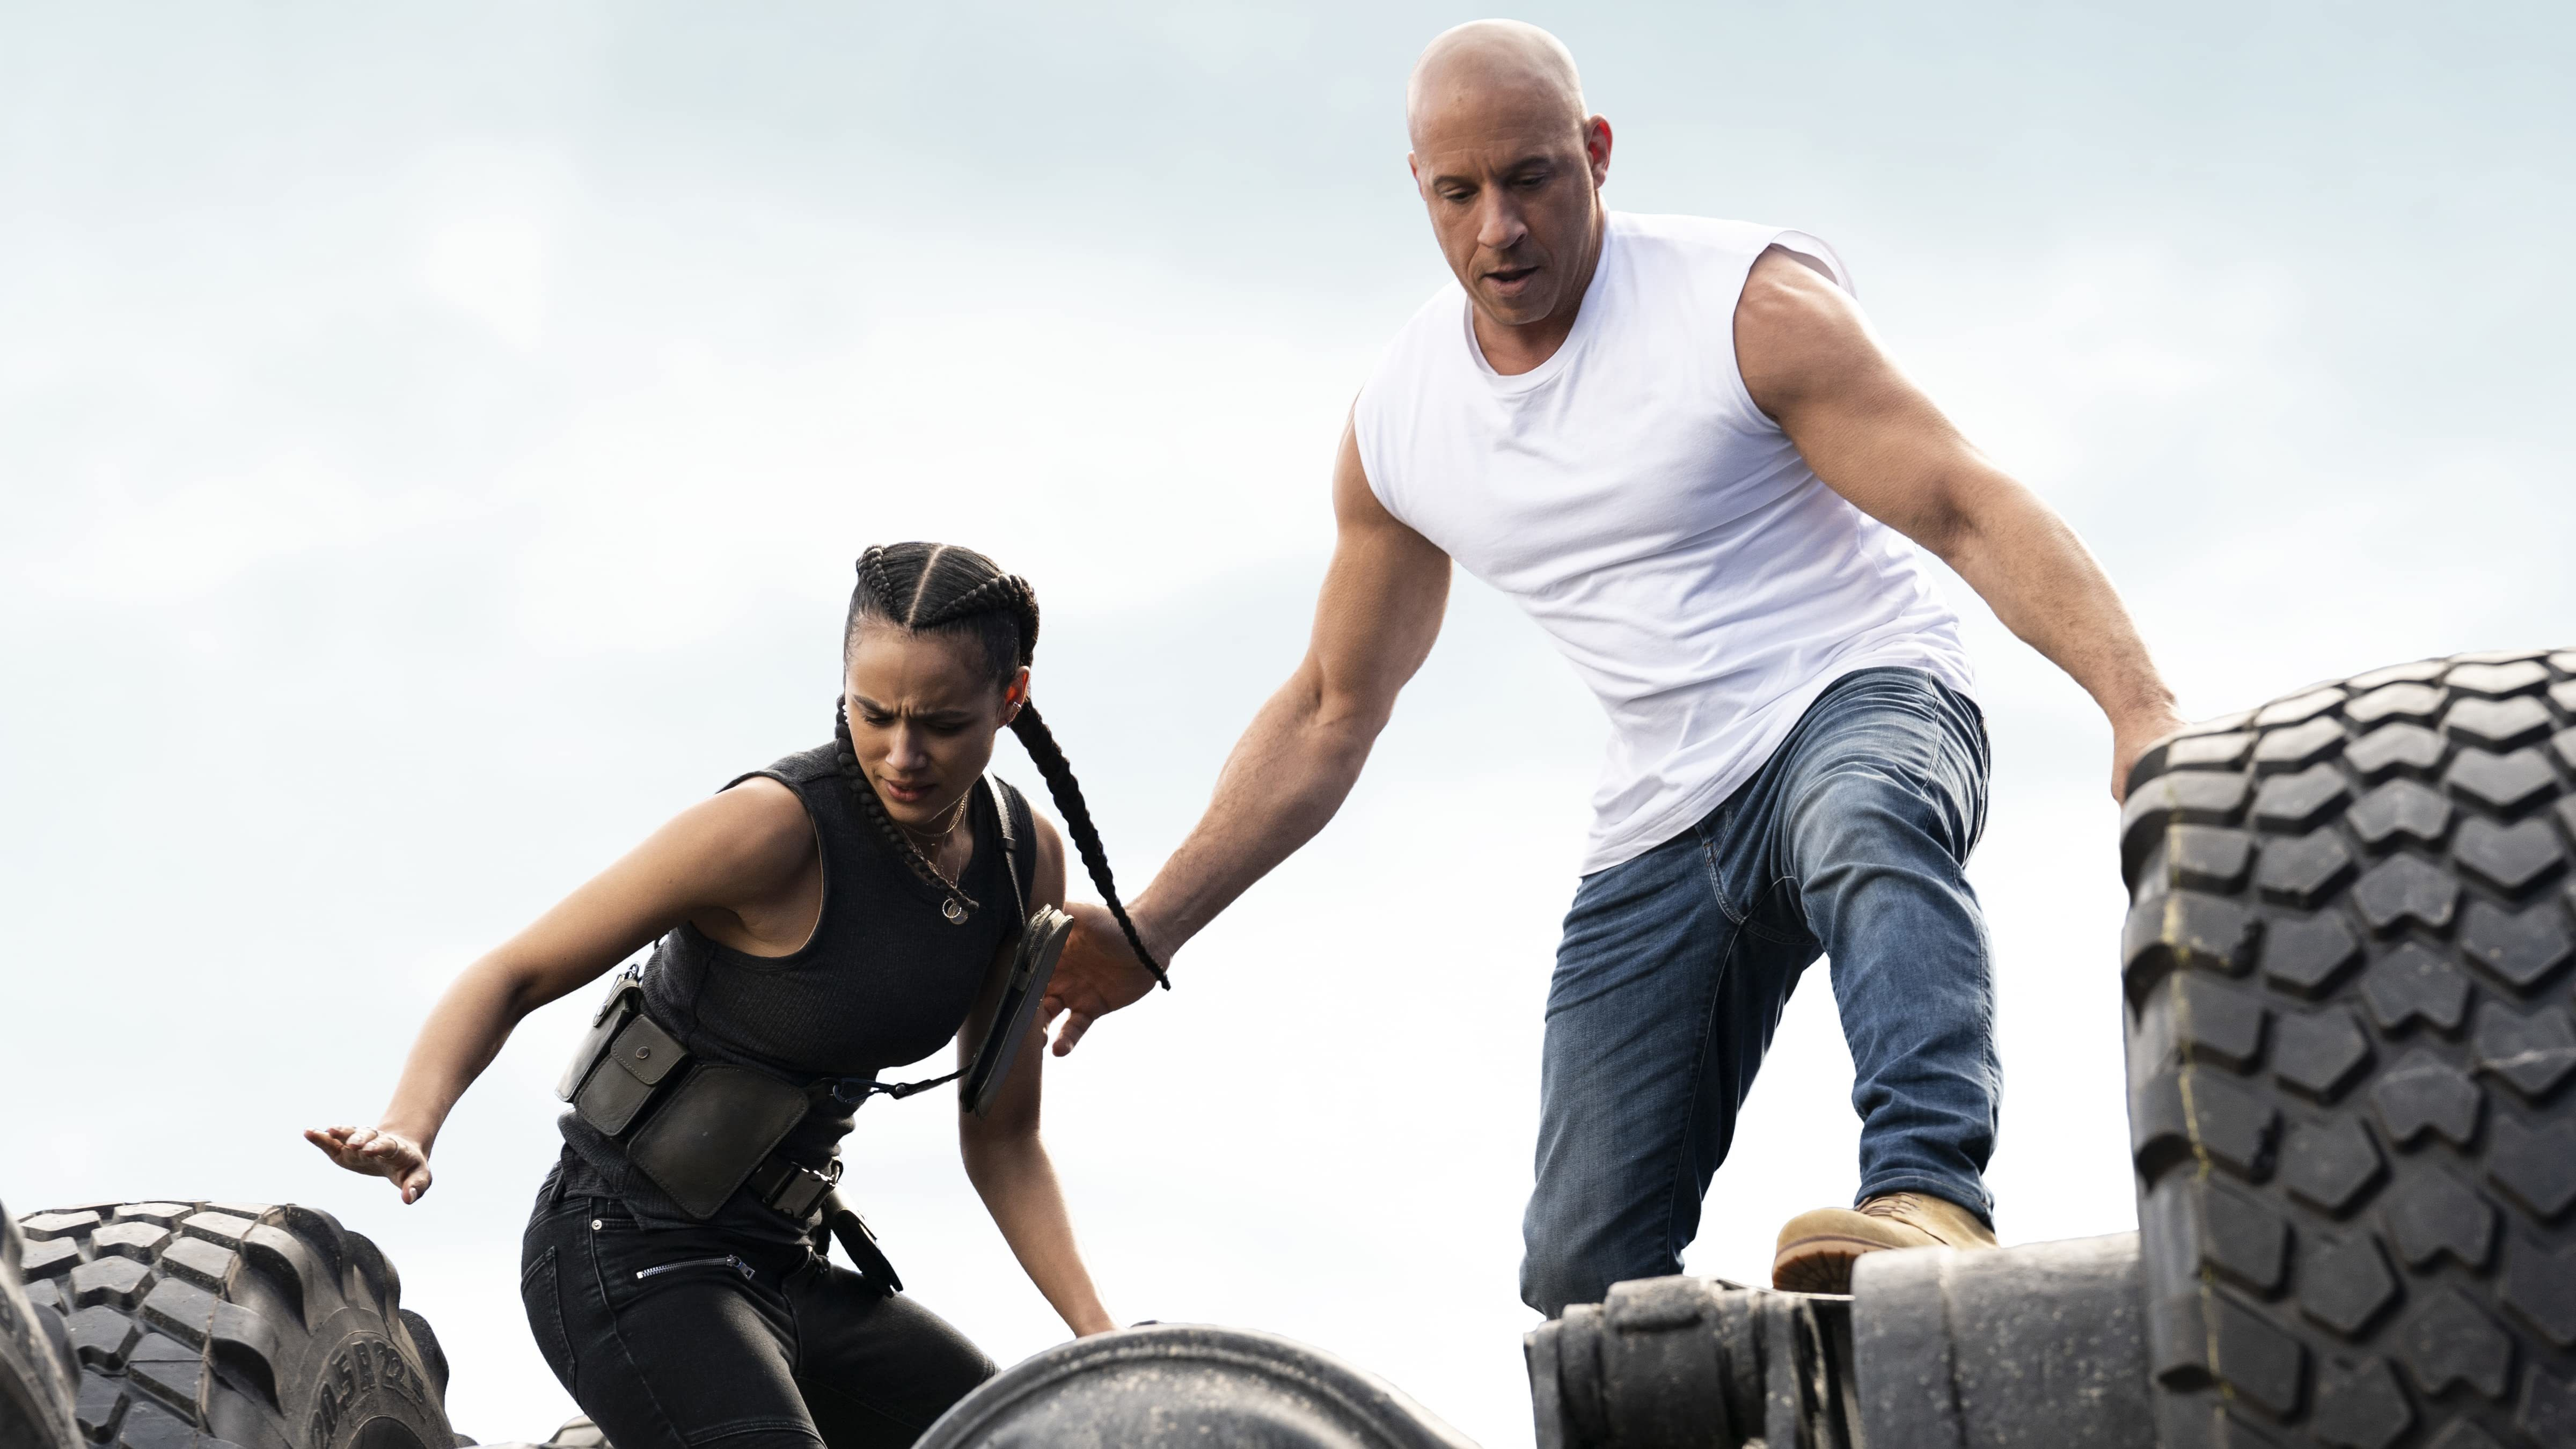 Two figures stand atop an overturned vehicle